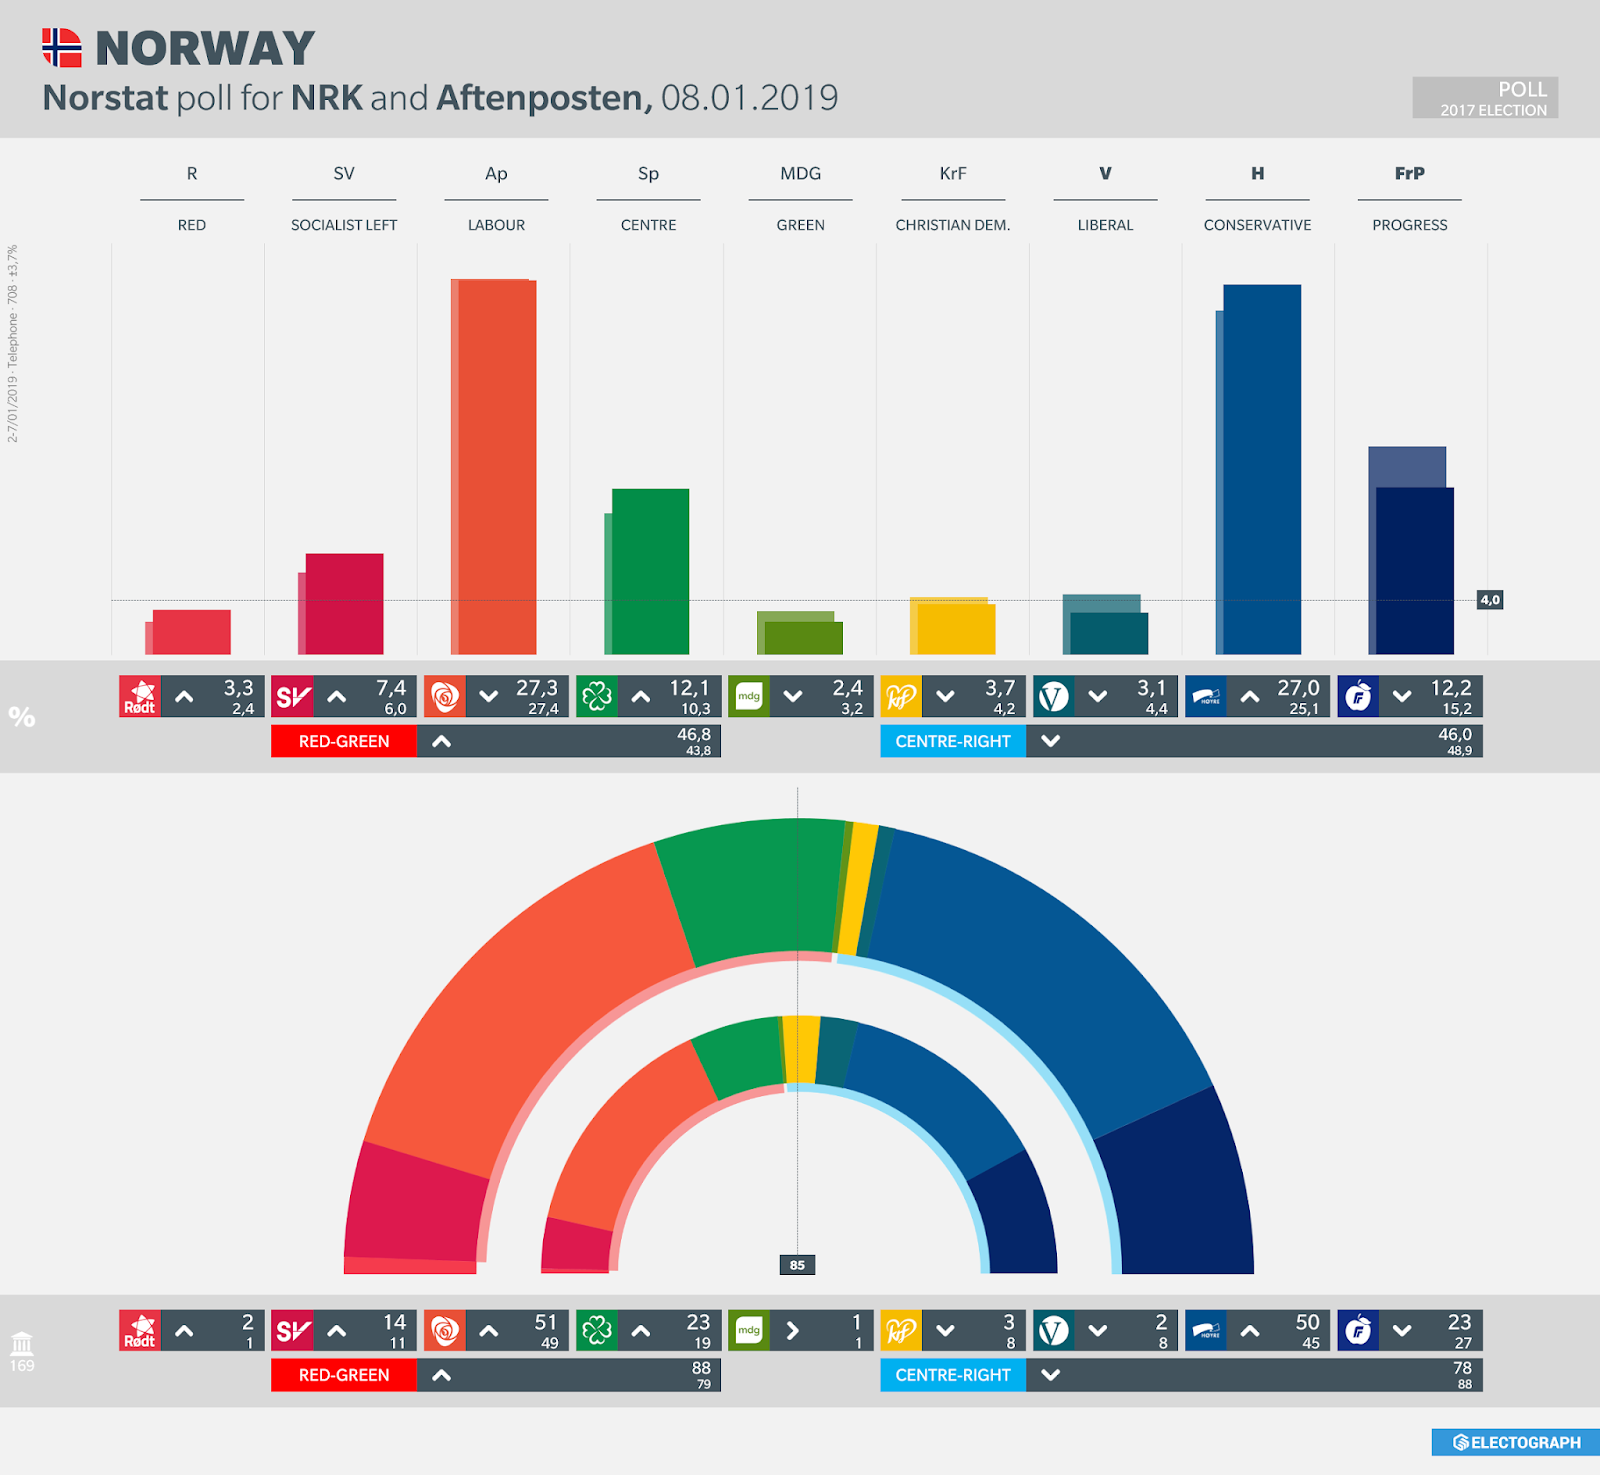 NORWAY: Norstat poll chart for NRK and Aftenposten, 8 January 2019